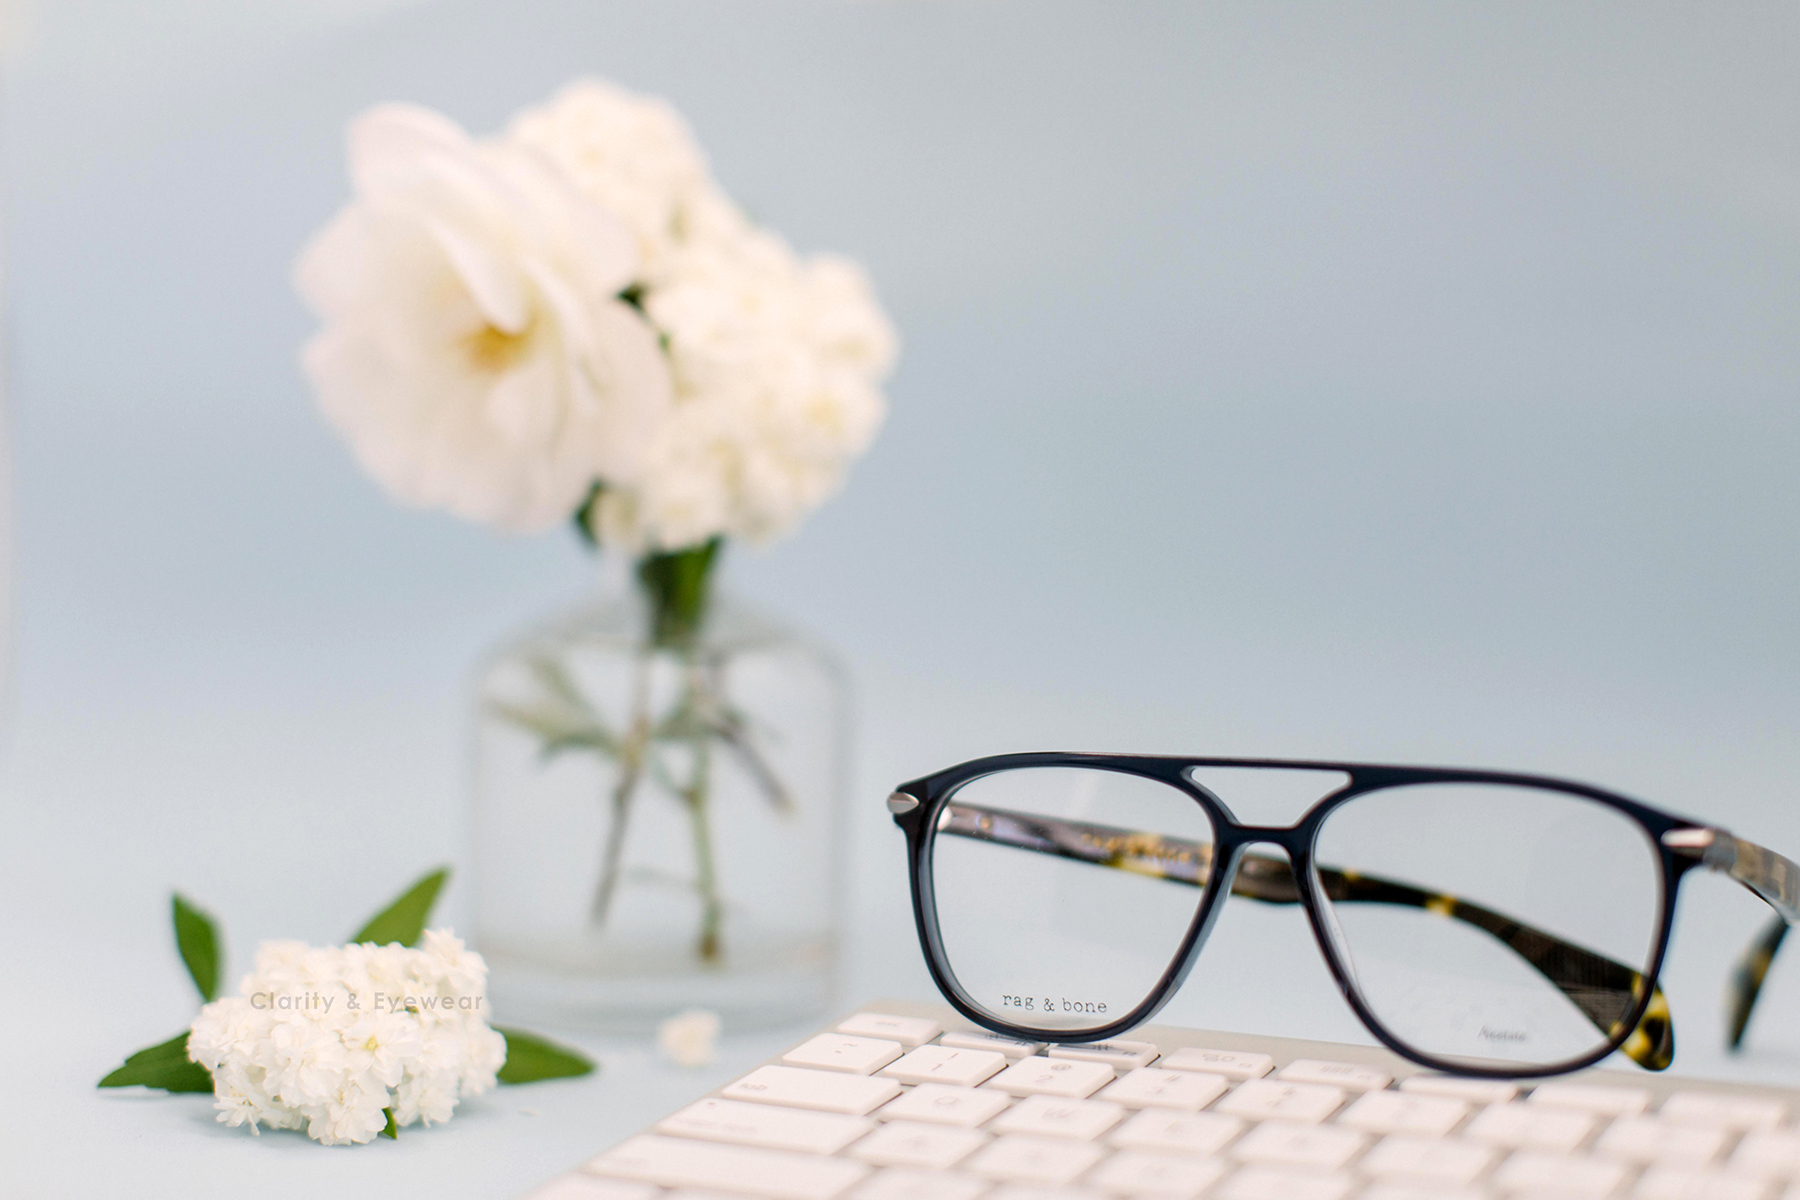 Black optical glasses sitting on top of white keyboards with a vase of white flowers next to it